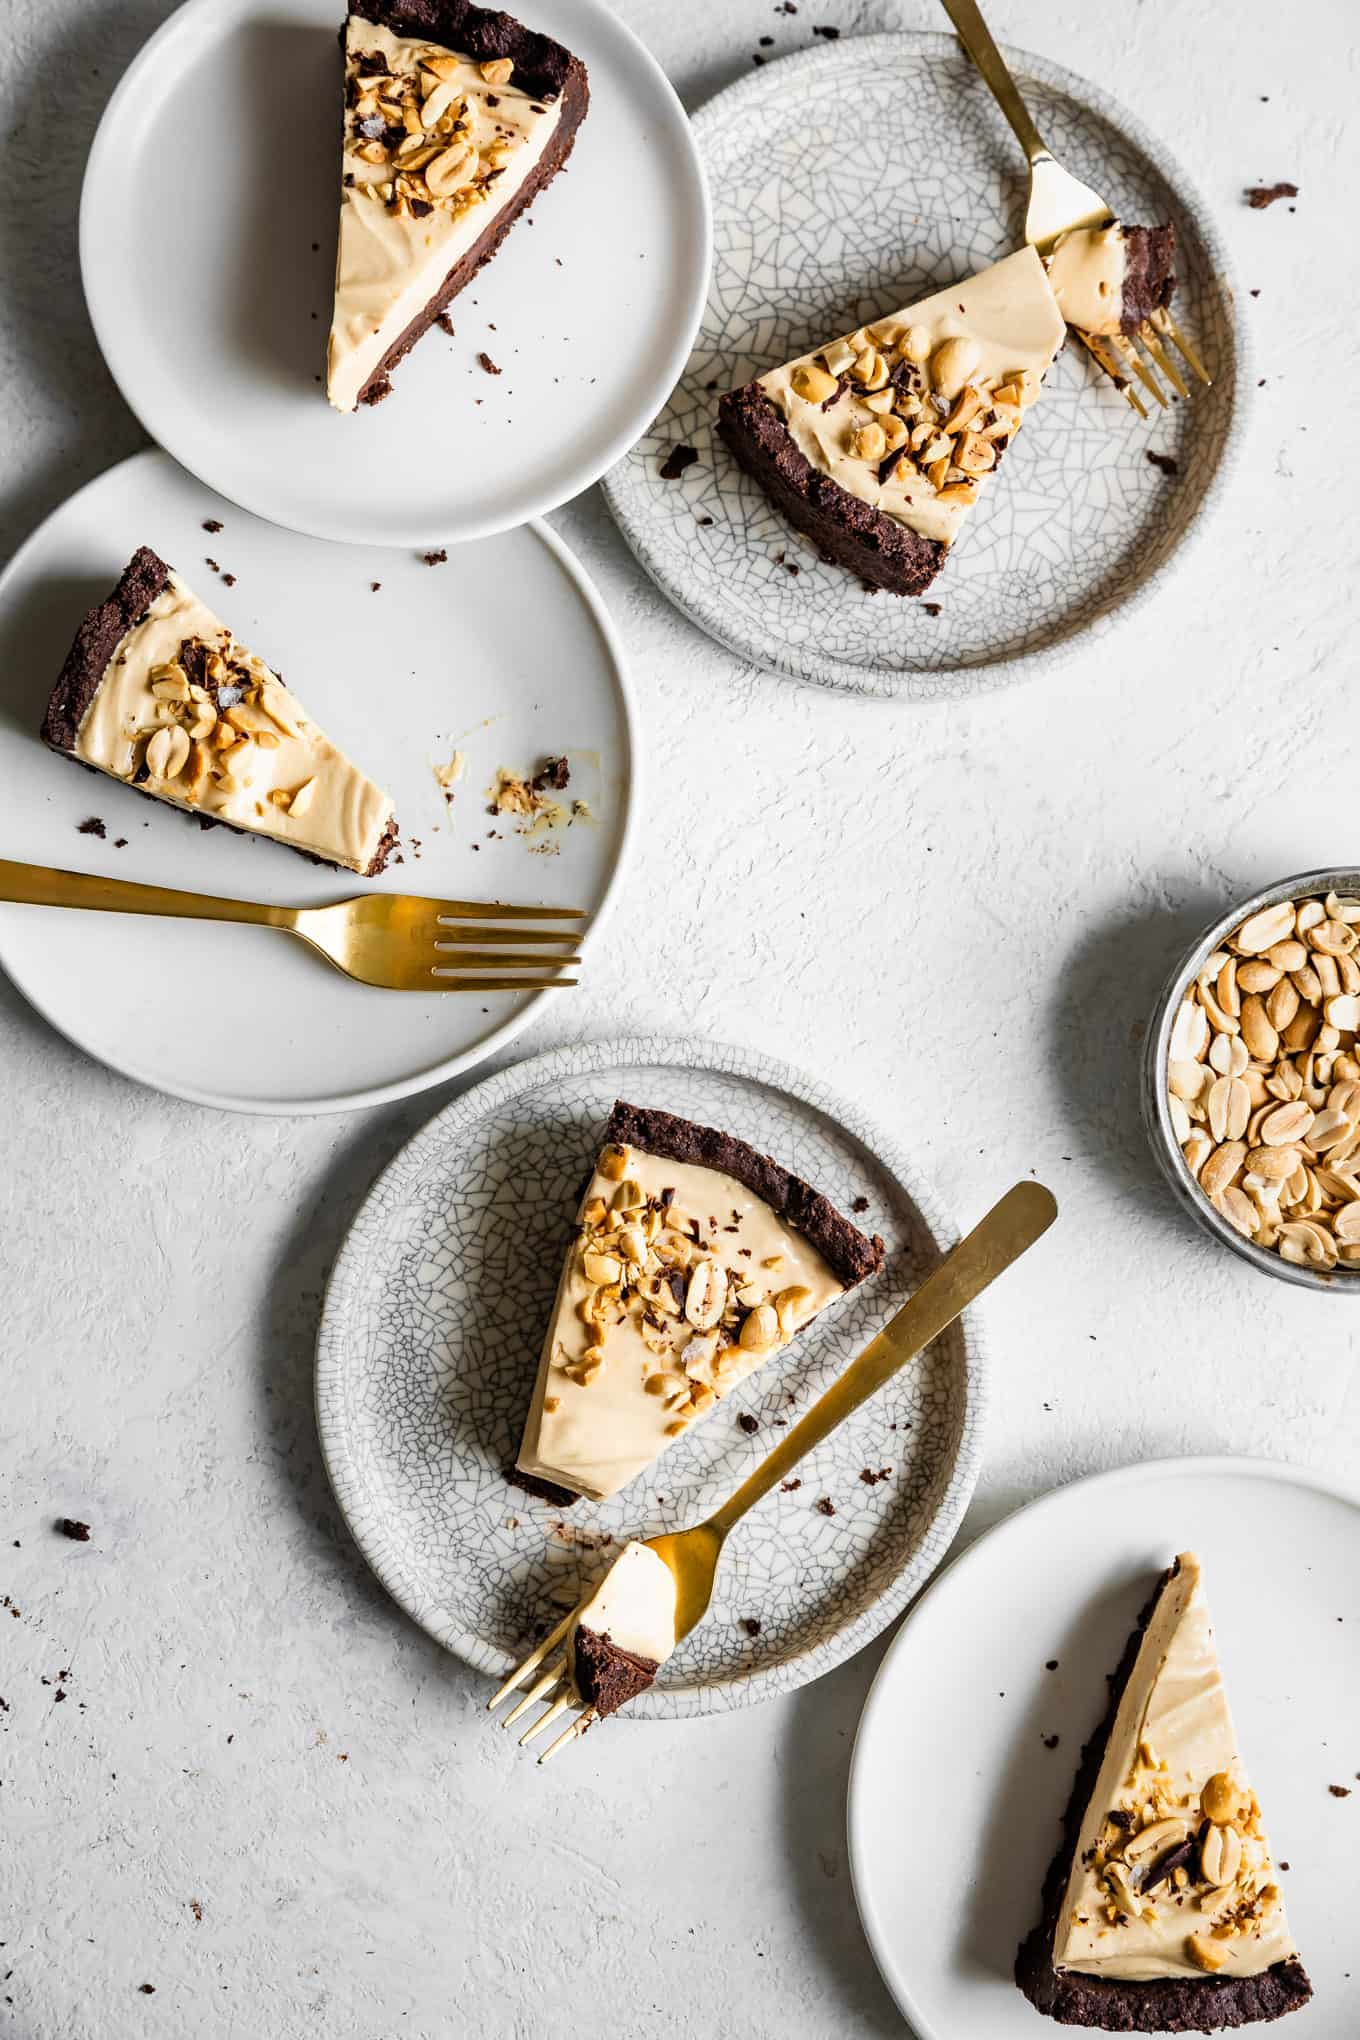 Gluten-Free Chocolate Peanut Butter Cream Pie